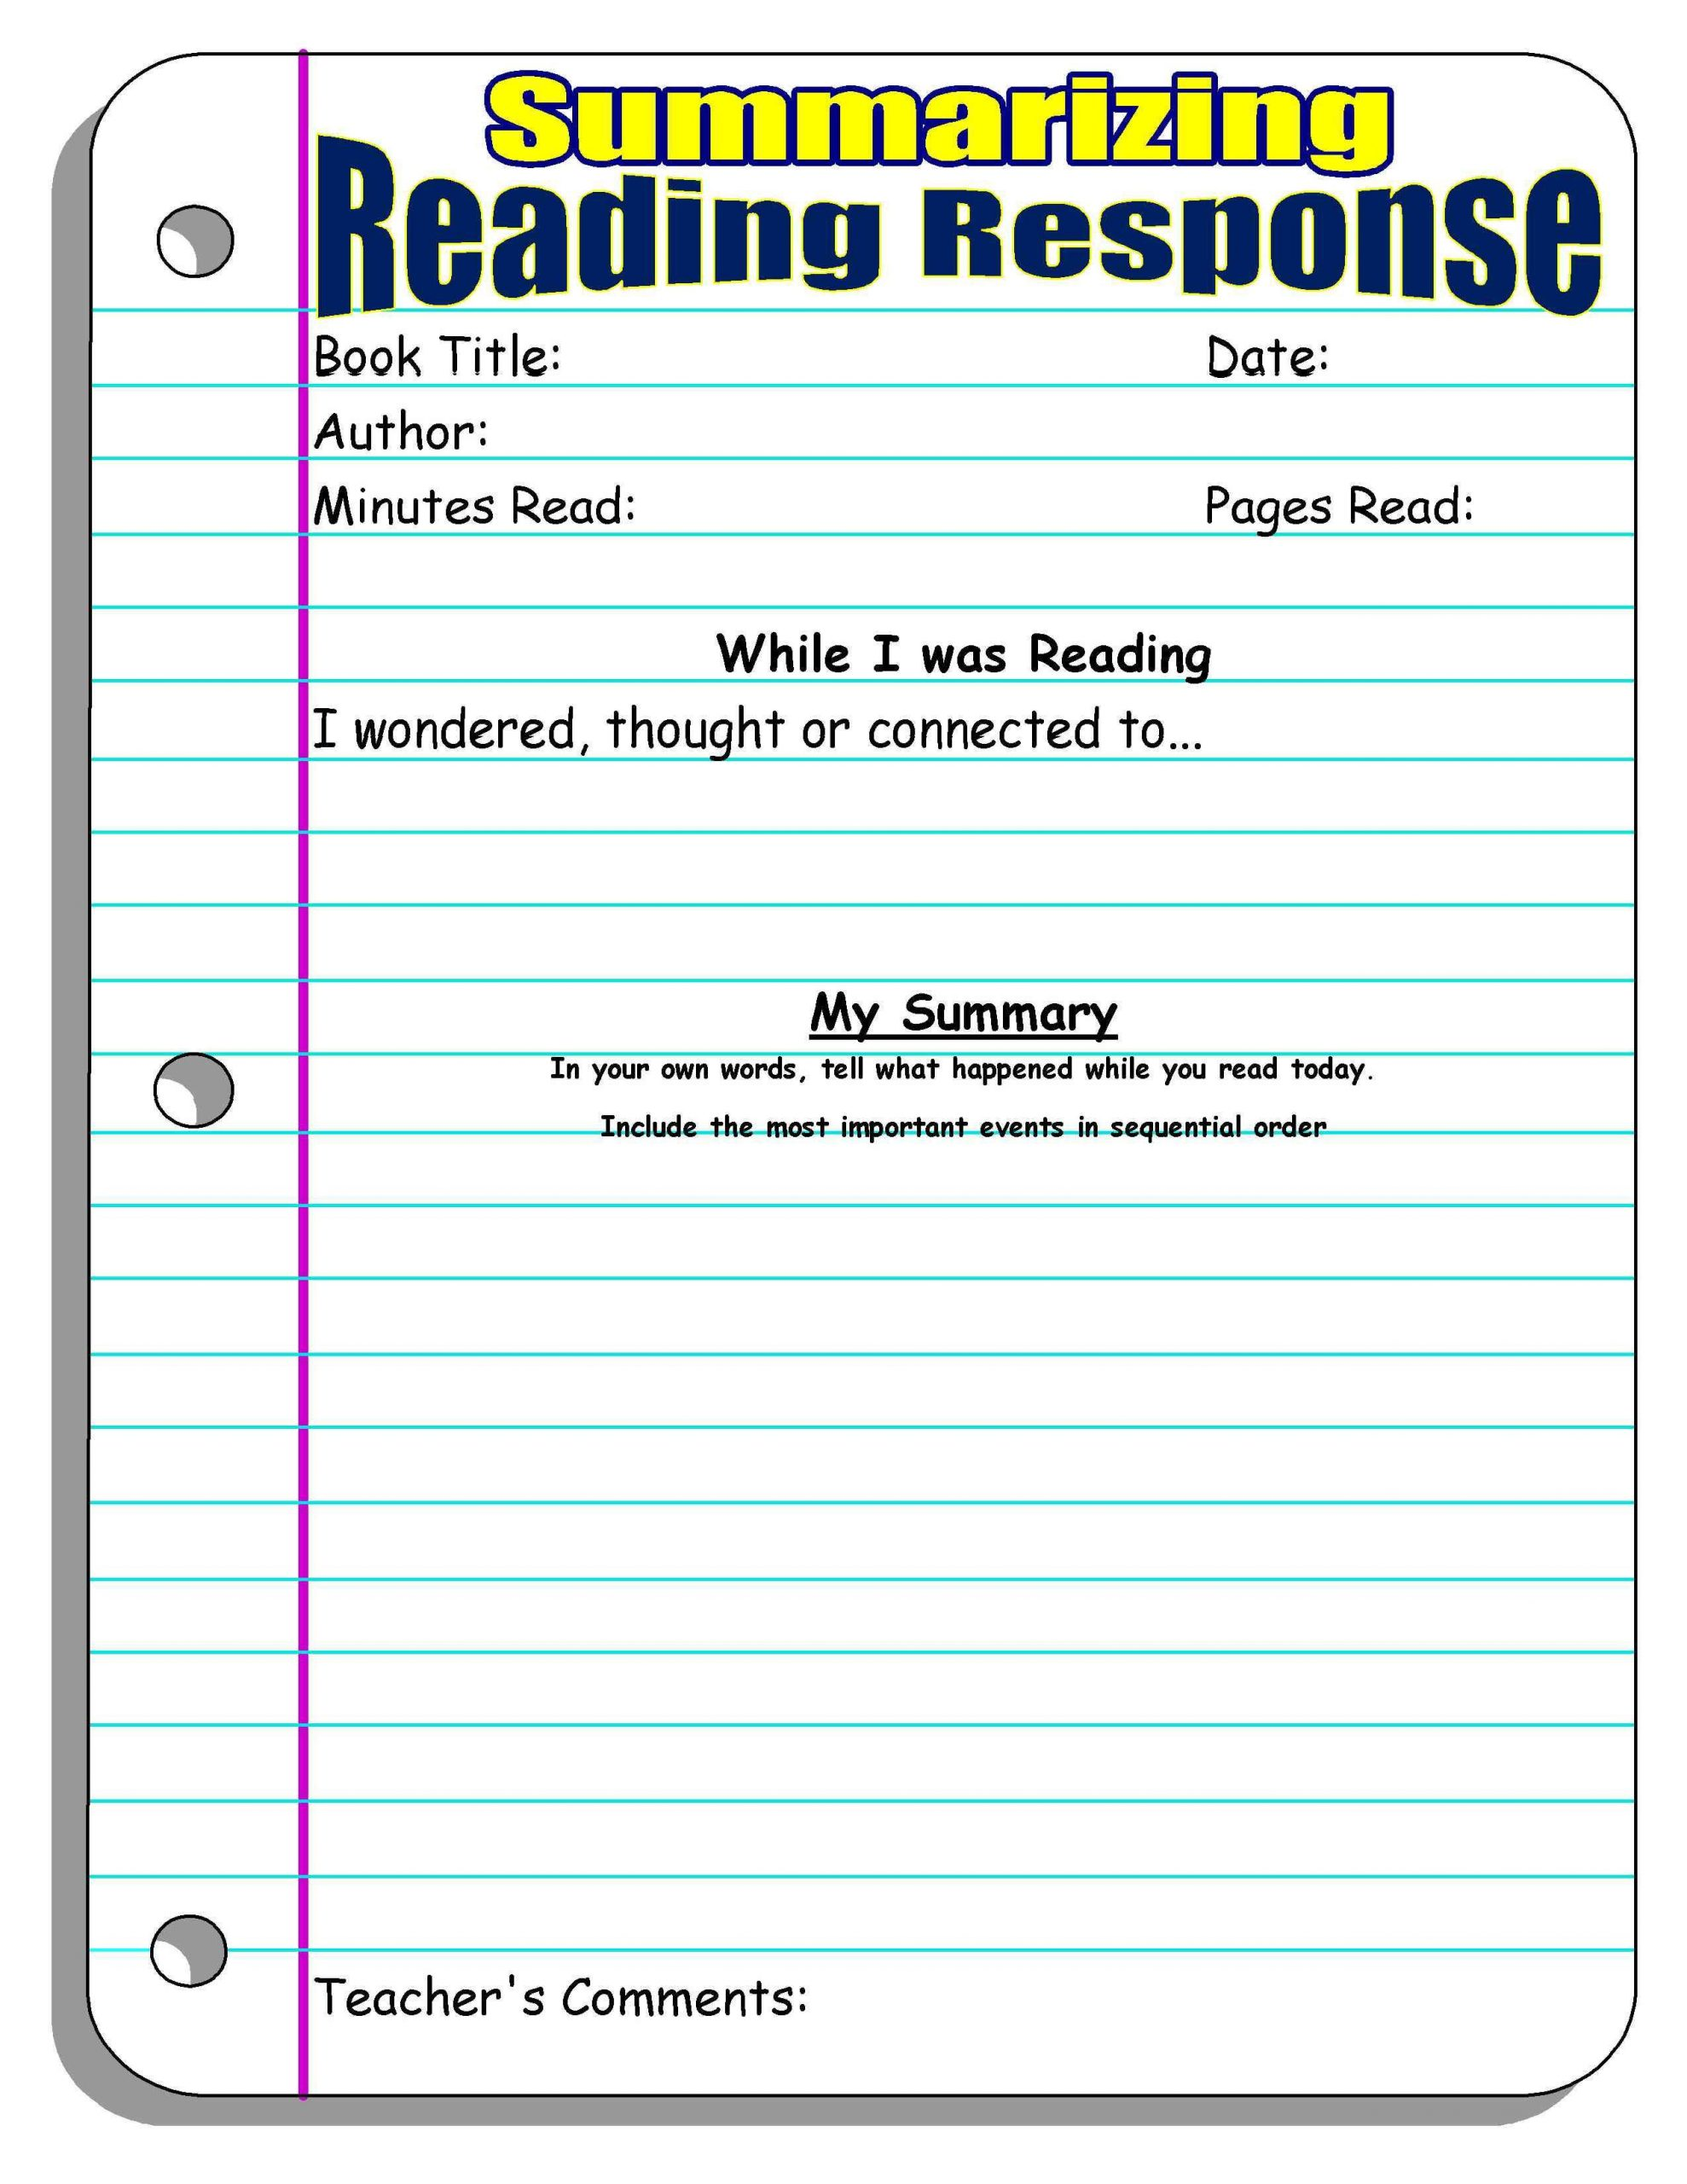 Summary Worksheets 5th Grade Reading Response forms and Graphic organizers